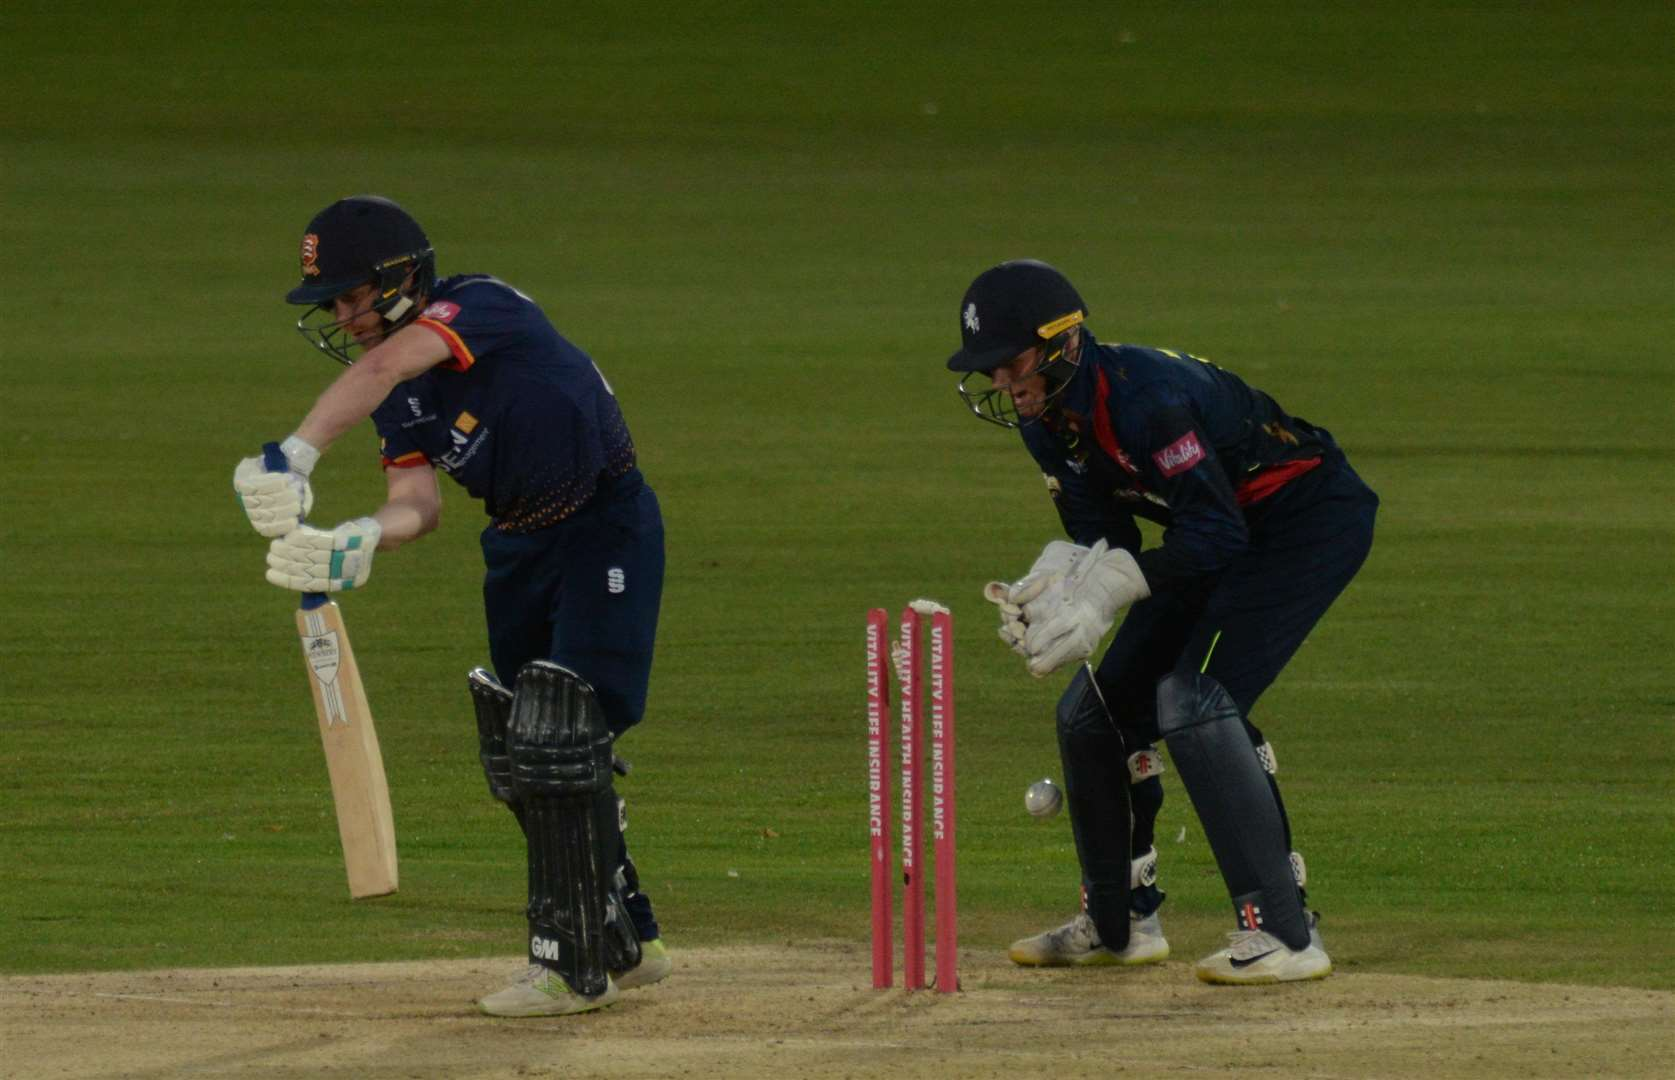 Kent Captain Sam Billings gets a close view of the dismissal of Essex Eagles opener Adam Wheater. Picture: Chris Davey.